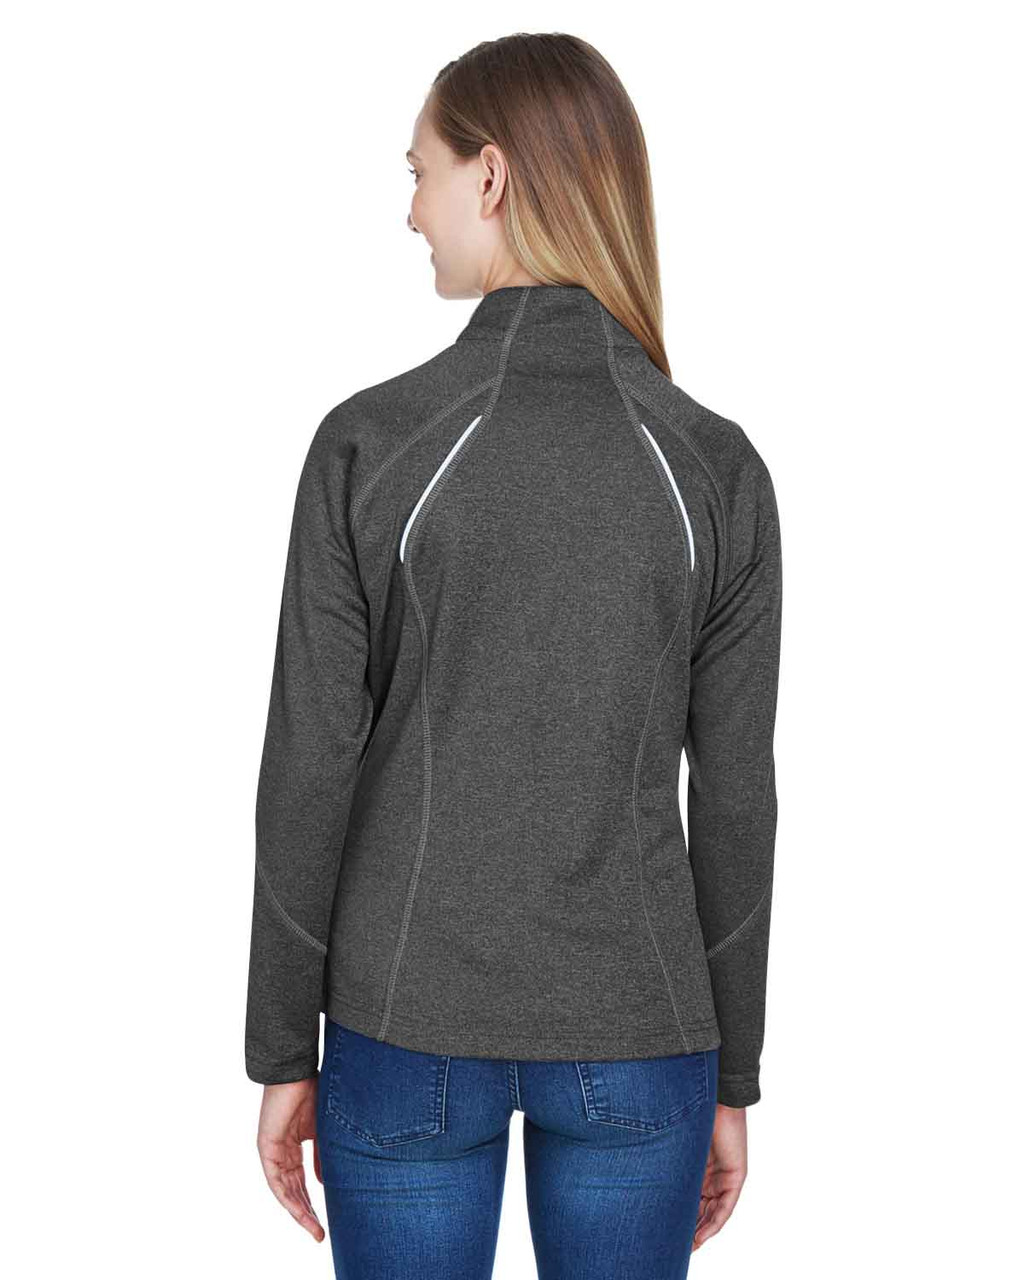 Carbon Heather - Back, 78174 North End Ladies' Gravity Performance Fleece Jacket | BlankClothing.ca